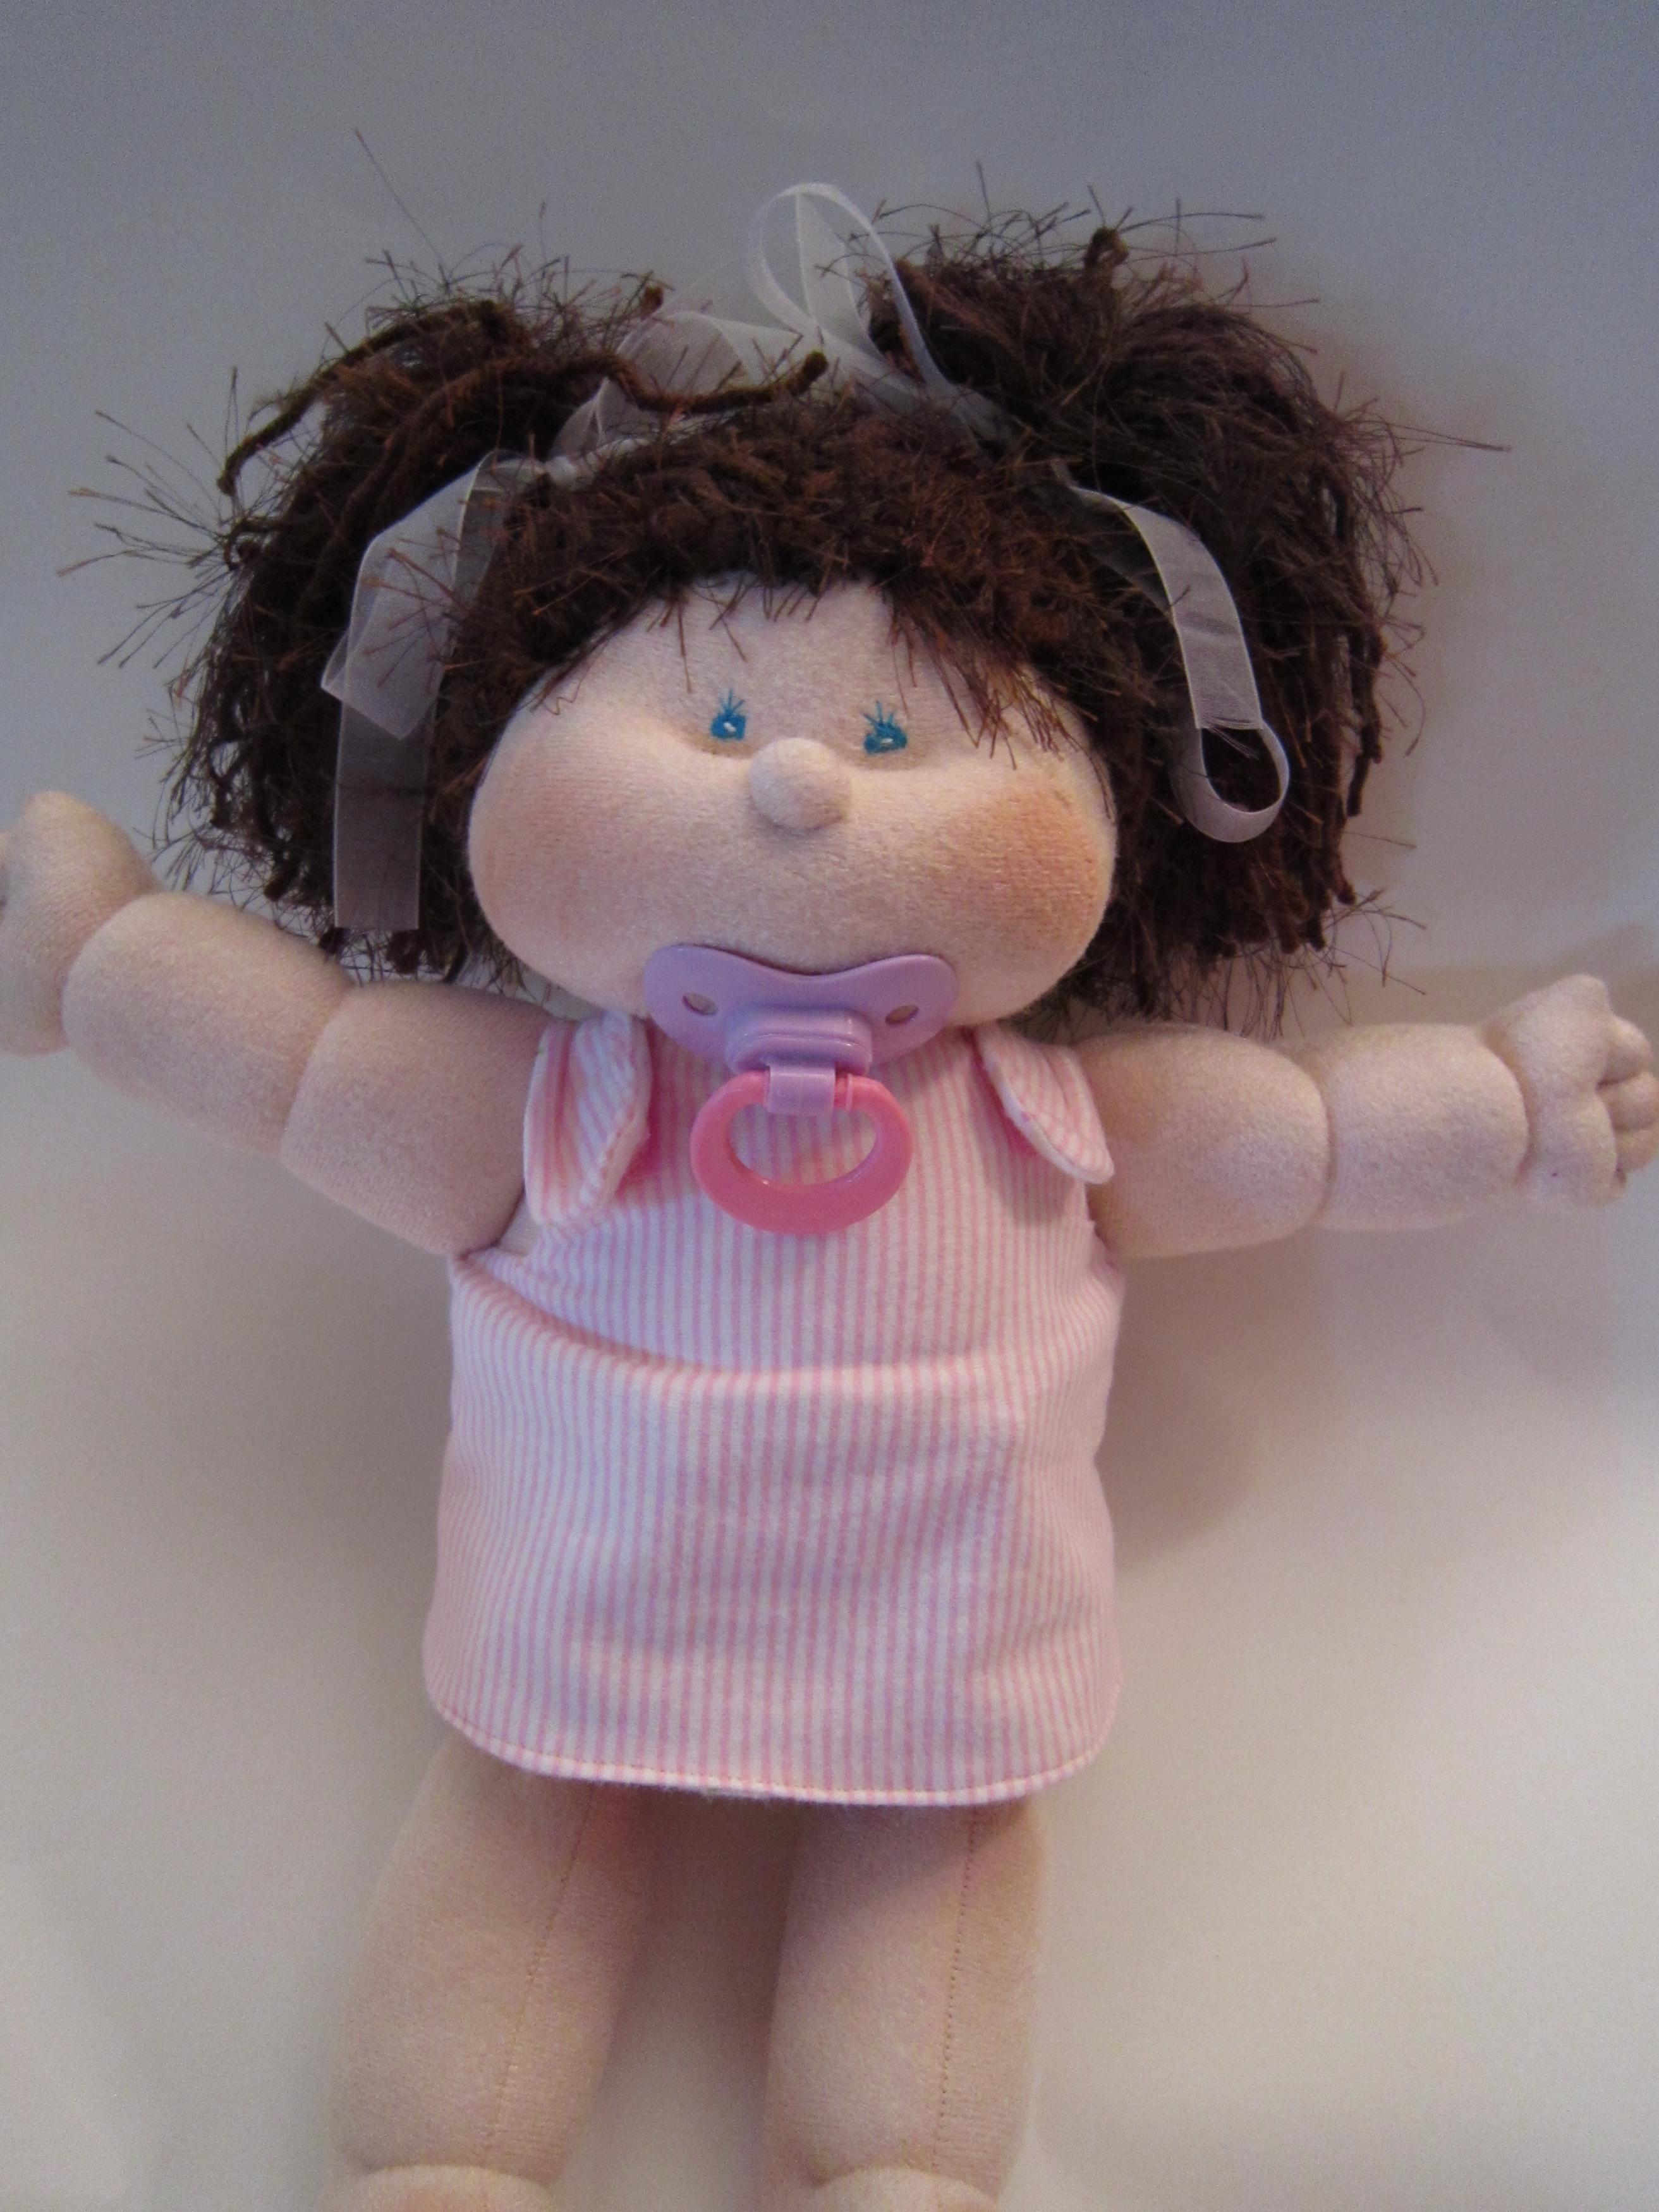 Dinky Baby Handmade Baby Doll Soft Sculpture Doll